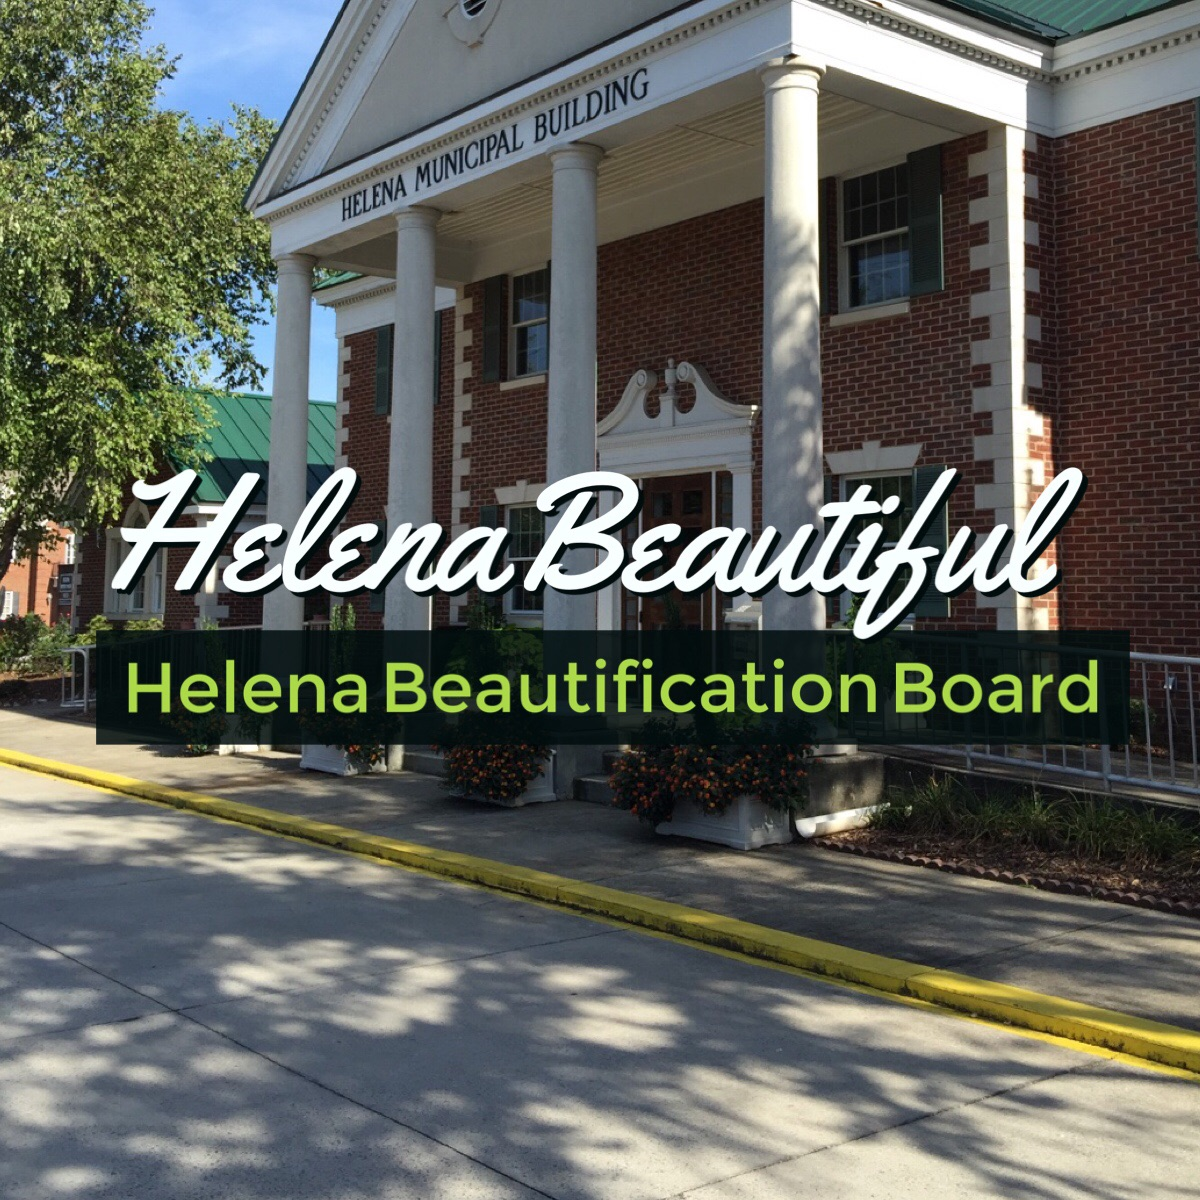 A Word from the Chairman - Making Helena beautiful is a duty we all share and can take pride in. http://www.helenabeautiful.com/chairman.html  #HelenaAL #LoveWhereYouLive pic.twitter.com/Jrw1vKinQO